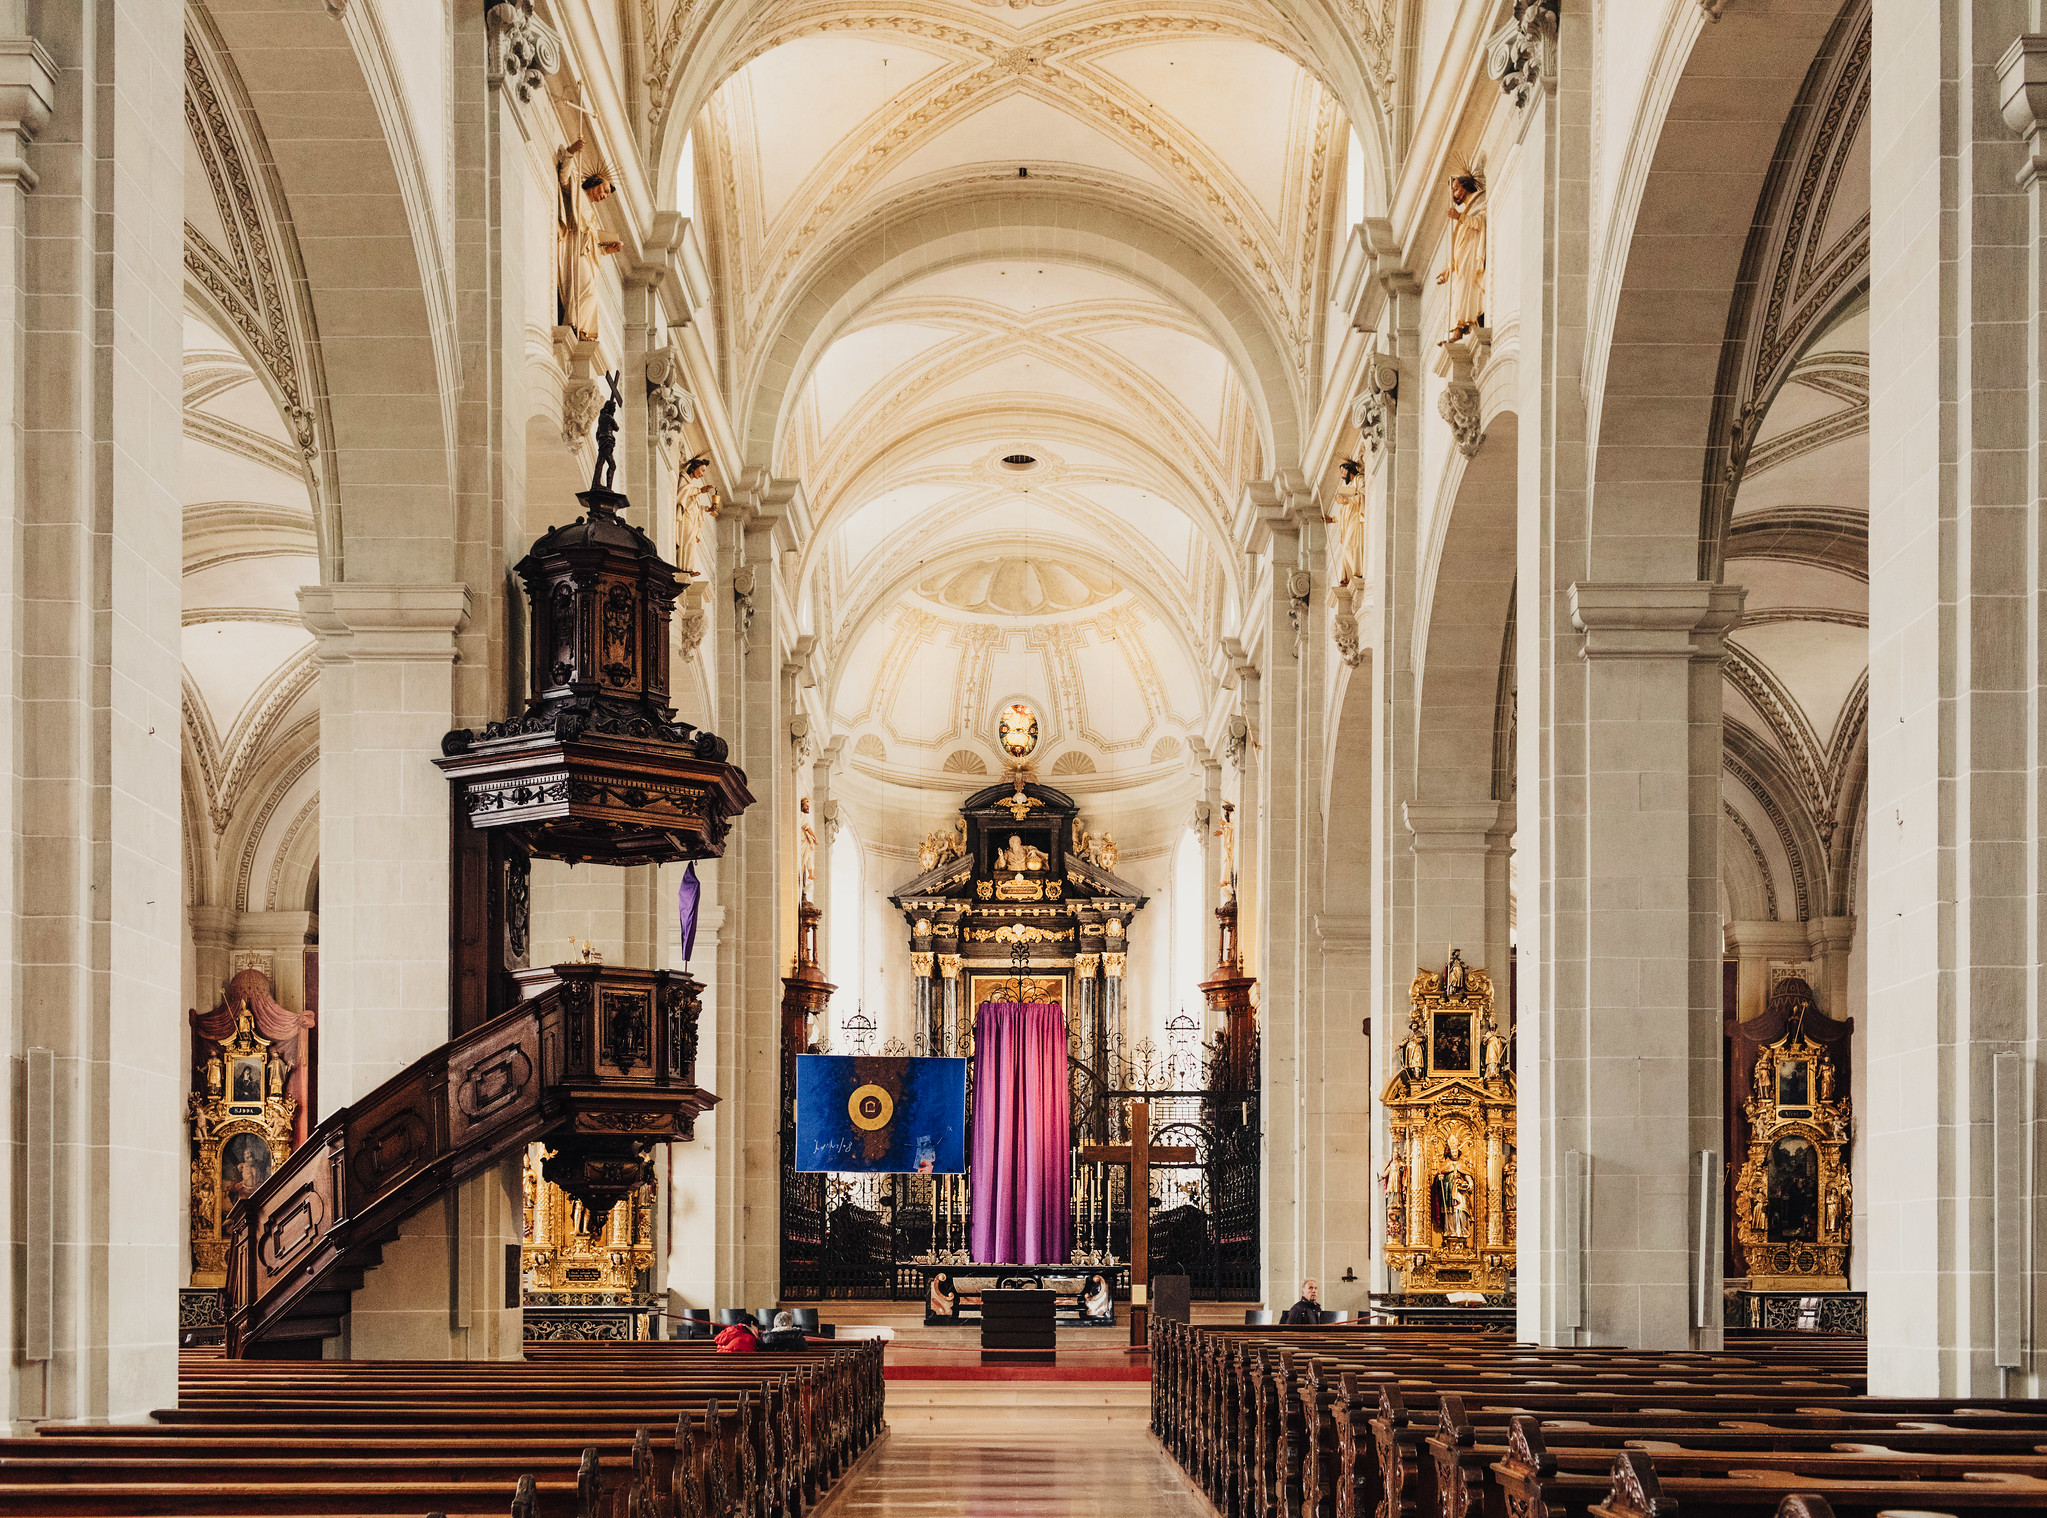 Inside the Church of St. Leodegar